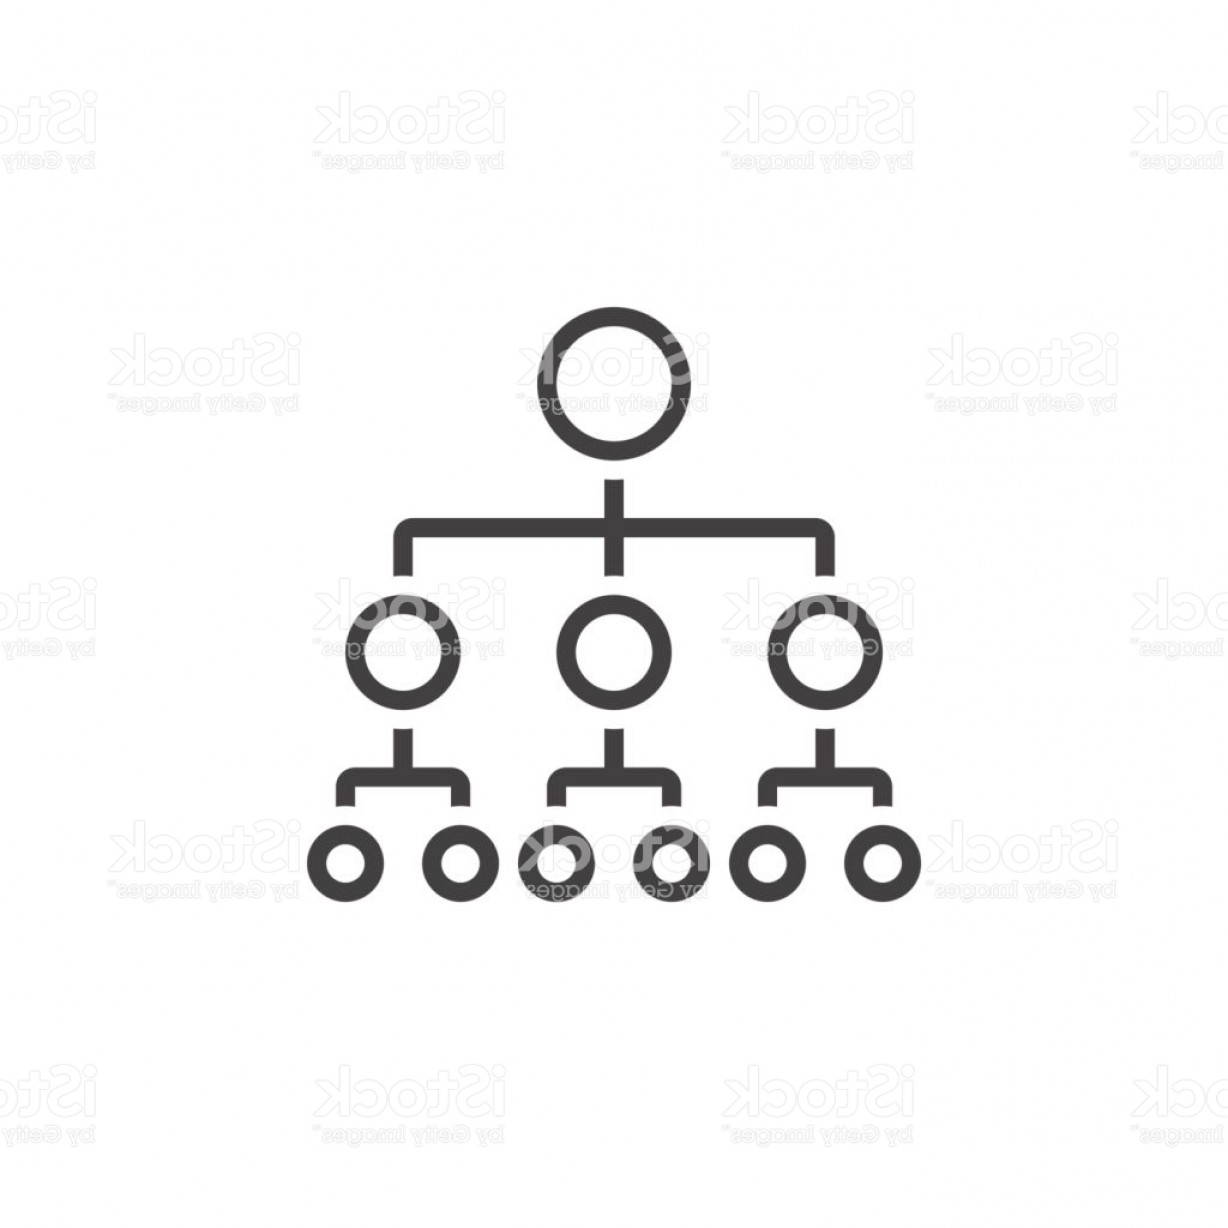 Vector Black And White Organization: Organizational Chart Line Icon Outline Hierarchy Vector Logo Linear Pictogram Gm